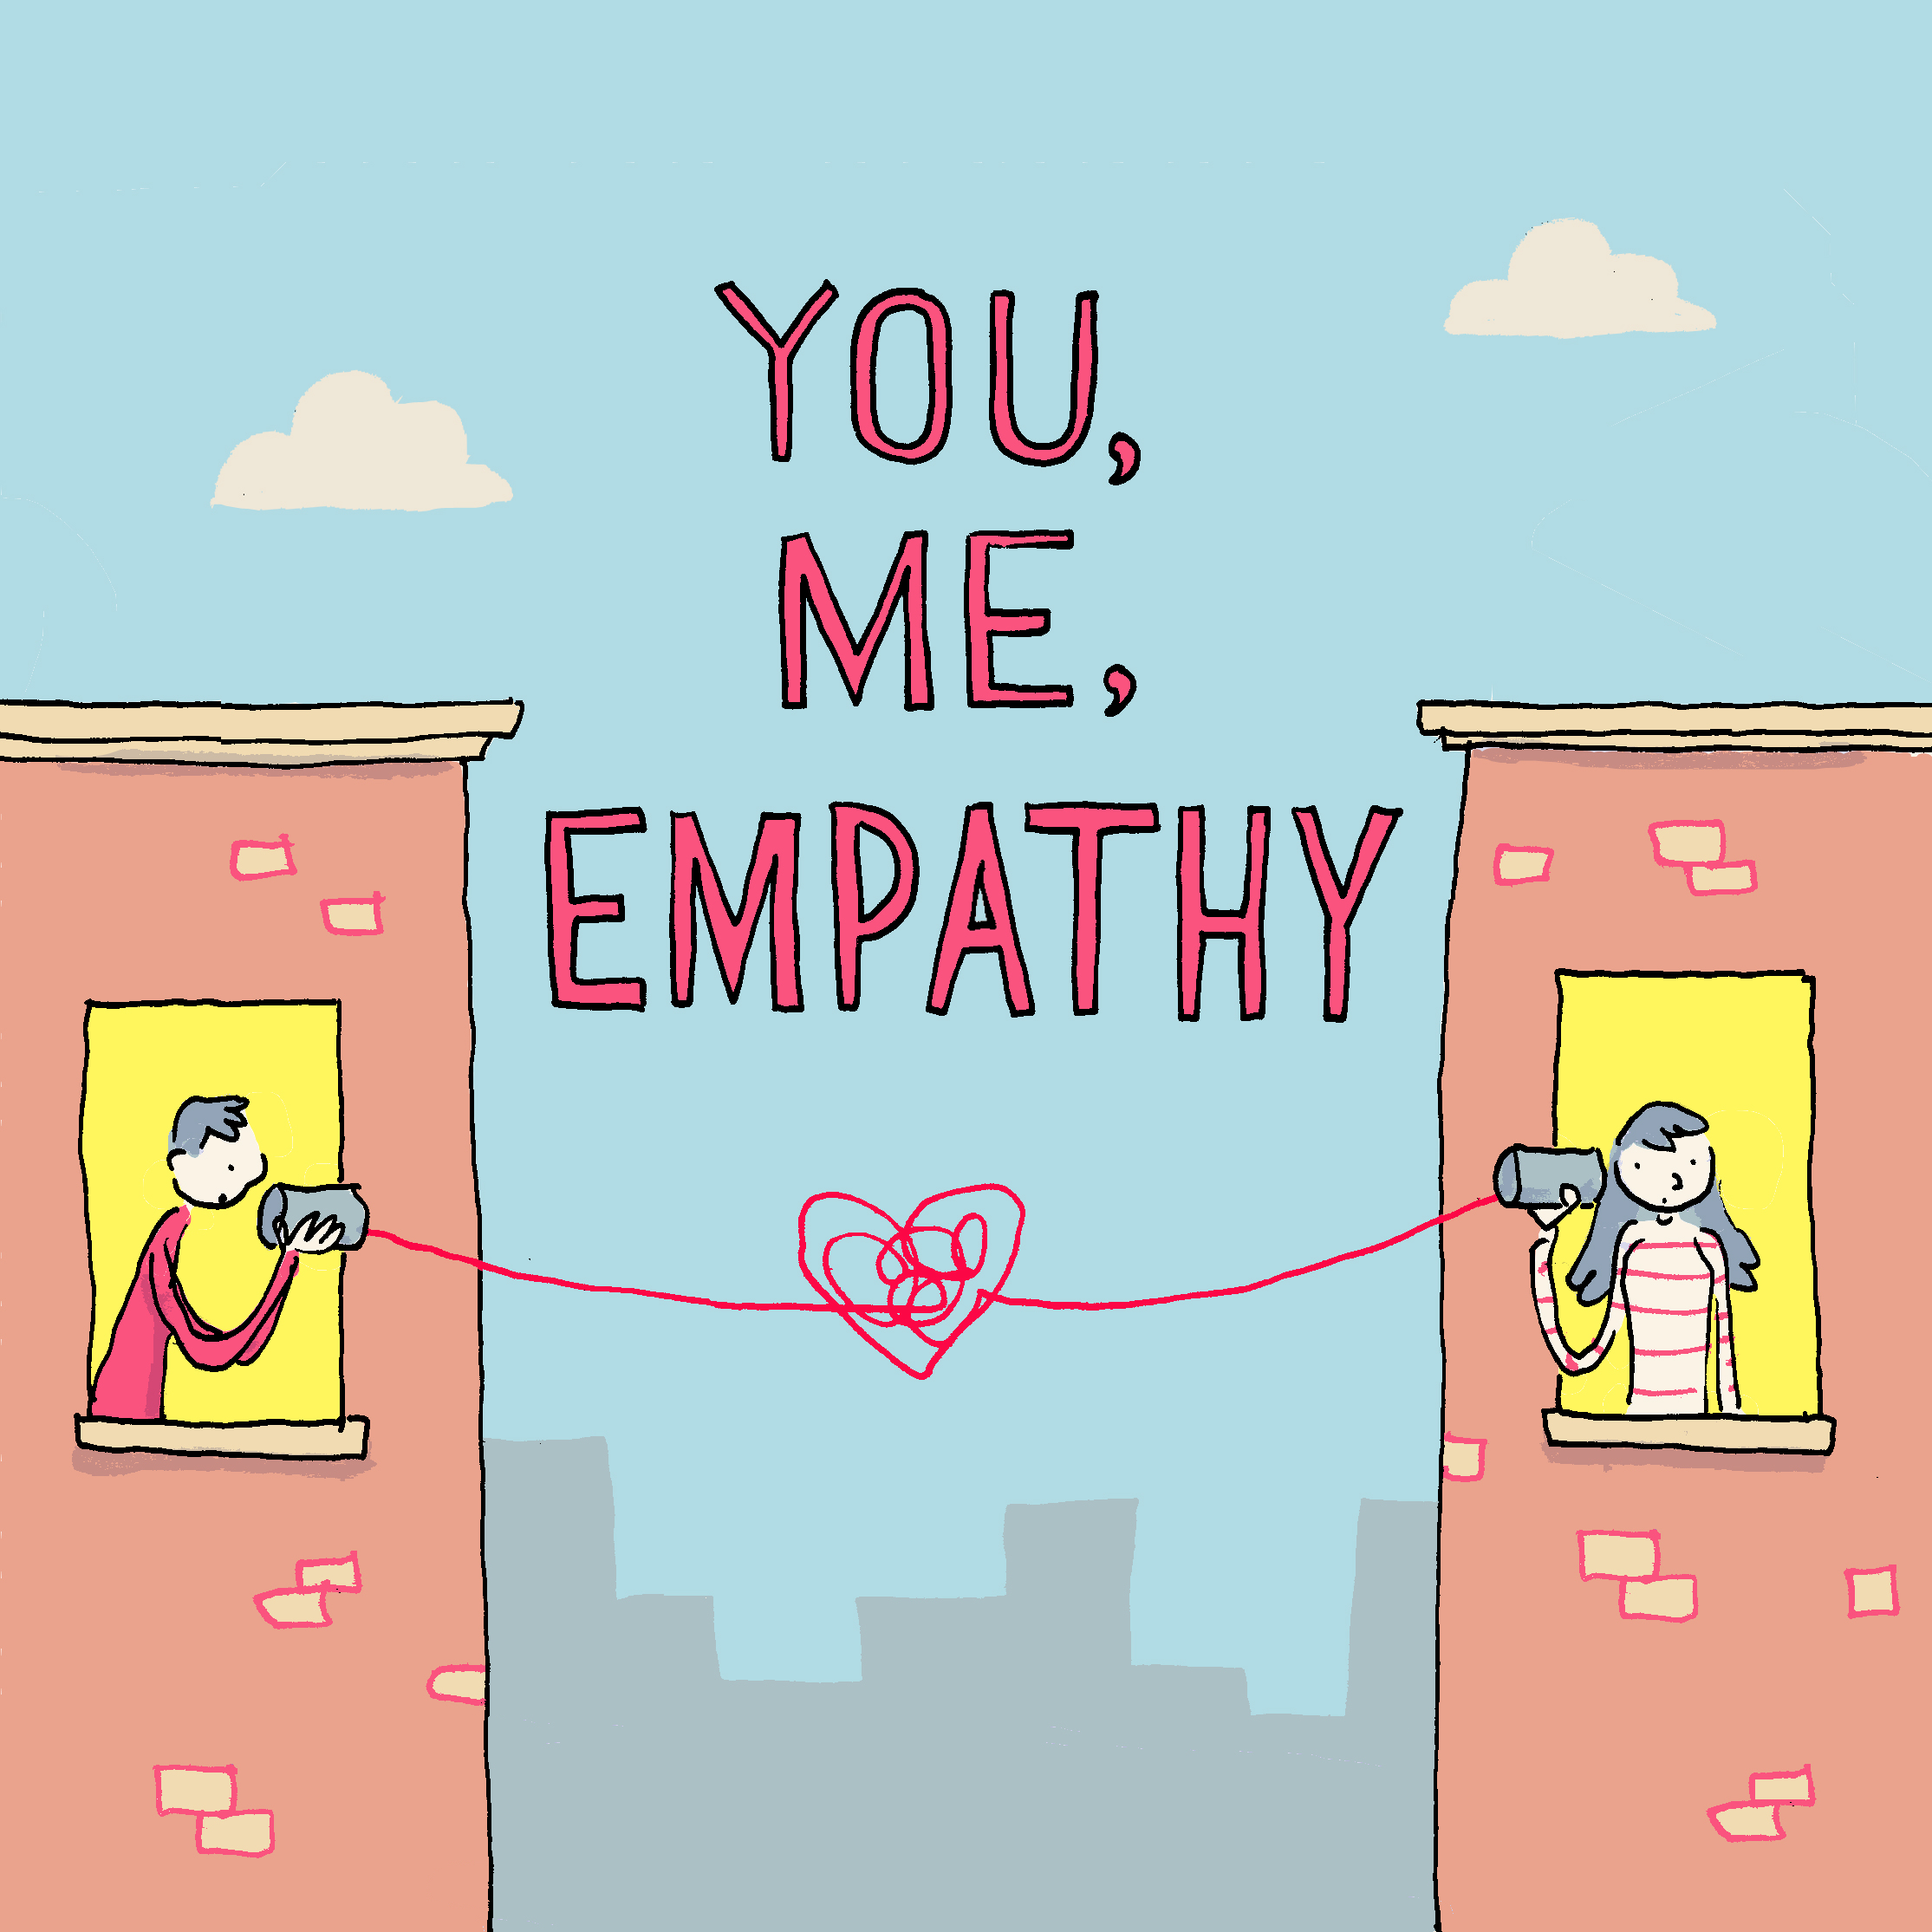 The You, Me, Empathy logo, designed by Grant Snider of IncidentalComics.com.